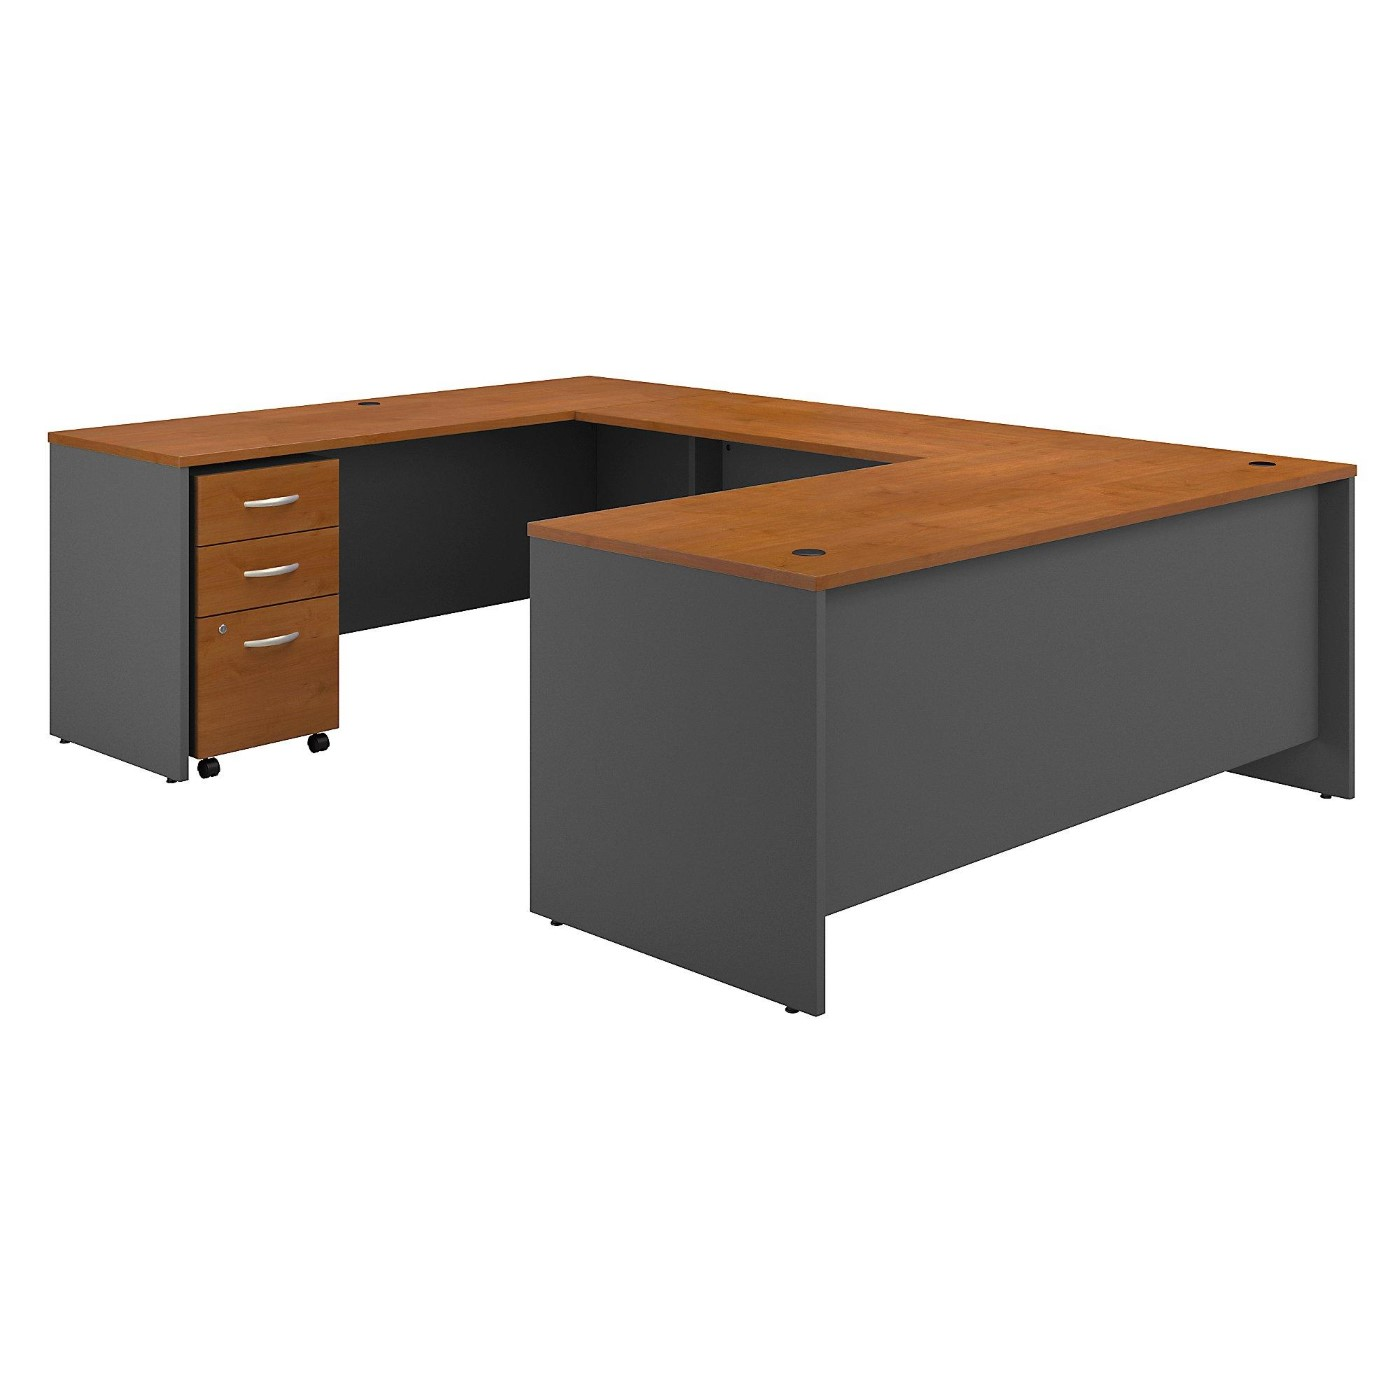 <font color=#c60><b>BUSH BUSINESS FURNITURE SERIES C 72W X 30D U SHAPED DESK WITH MOBILE FILE CABINET. FREE SHIPPING</font></b>